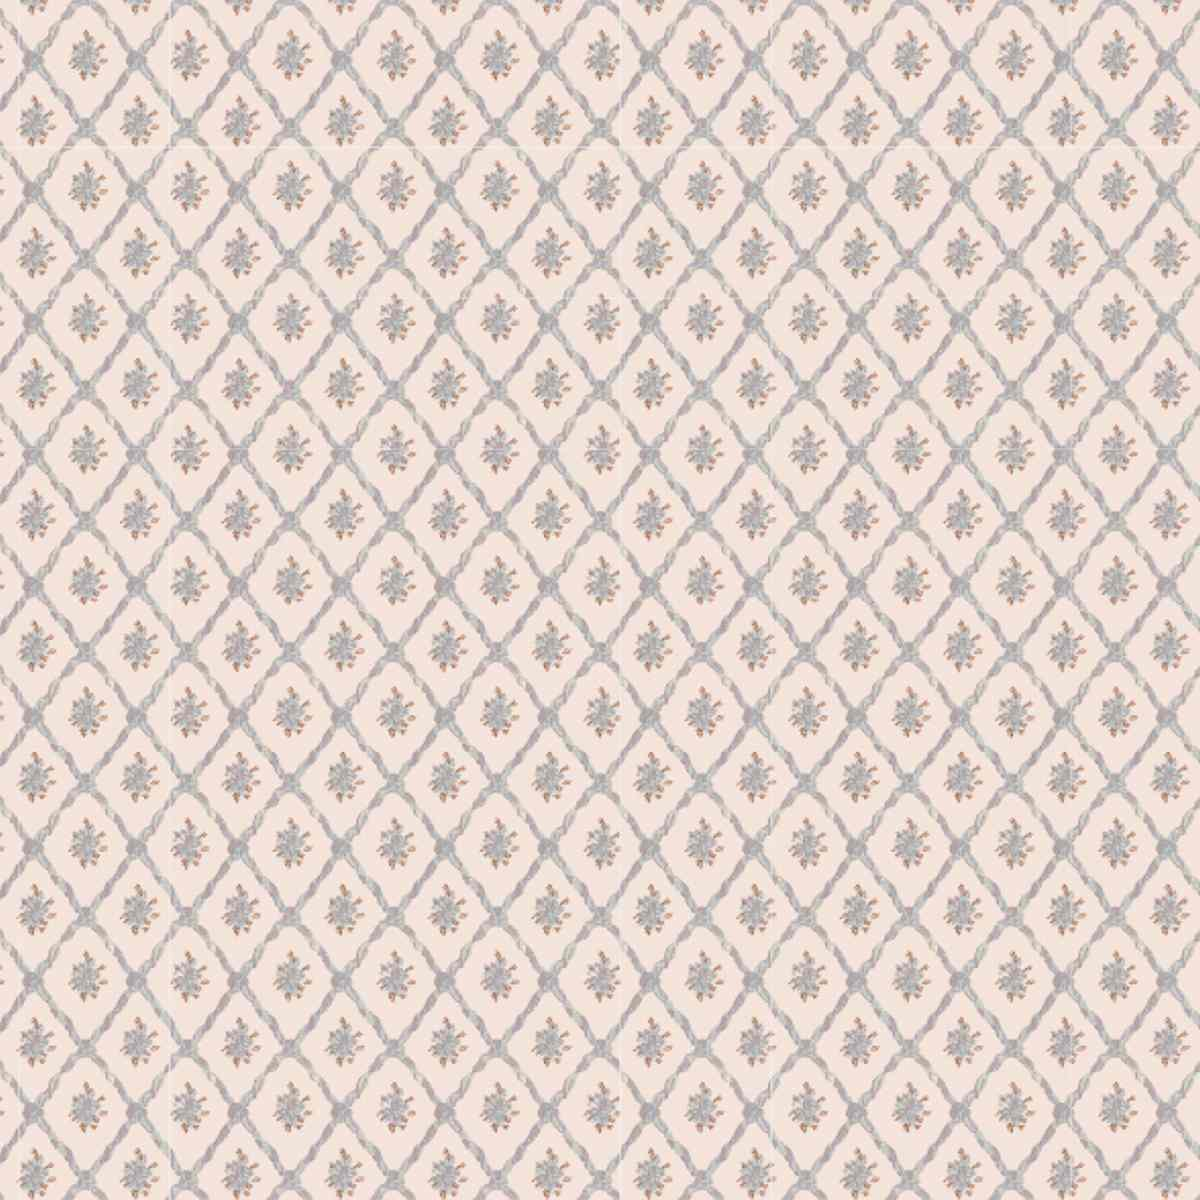 Wallpaper with stripes and borders